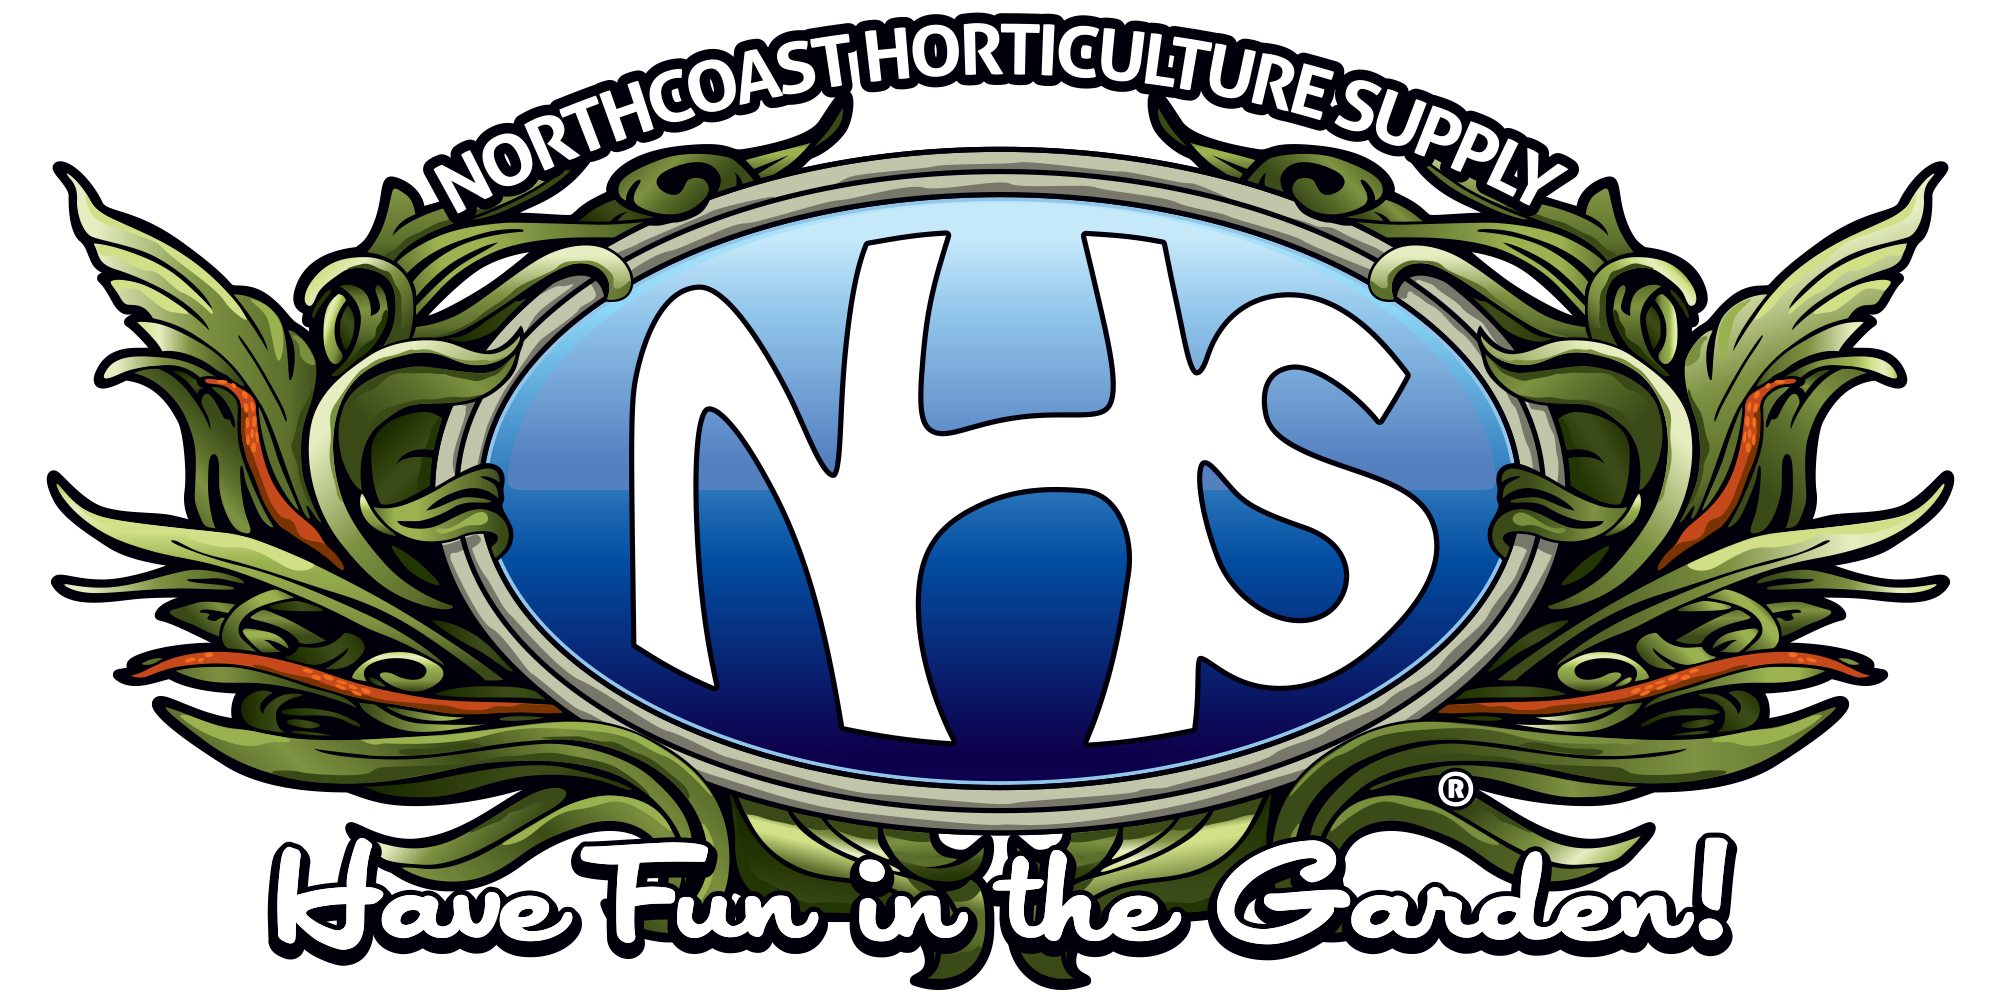 Northcoast Horticulture Supply